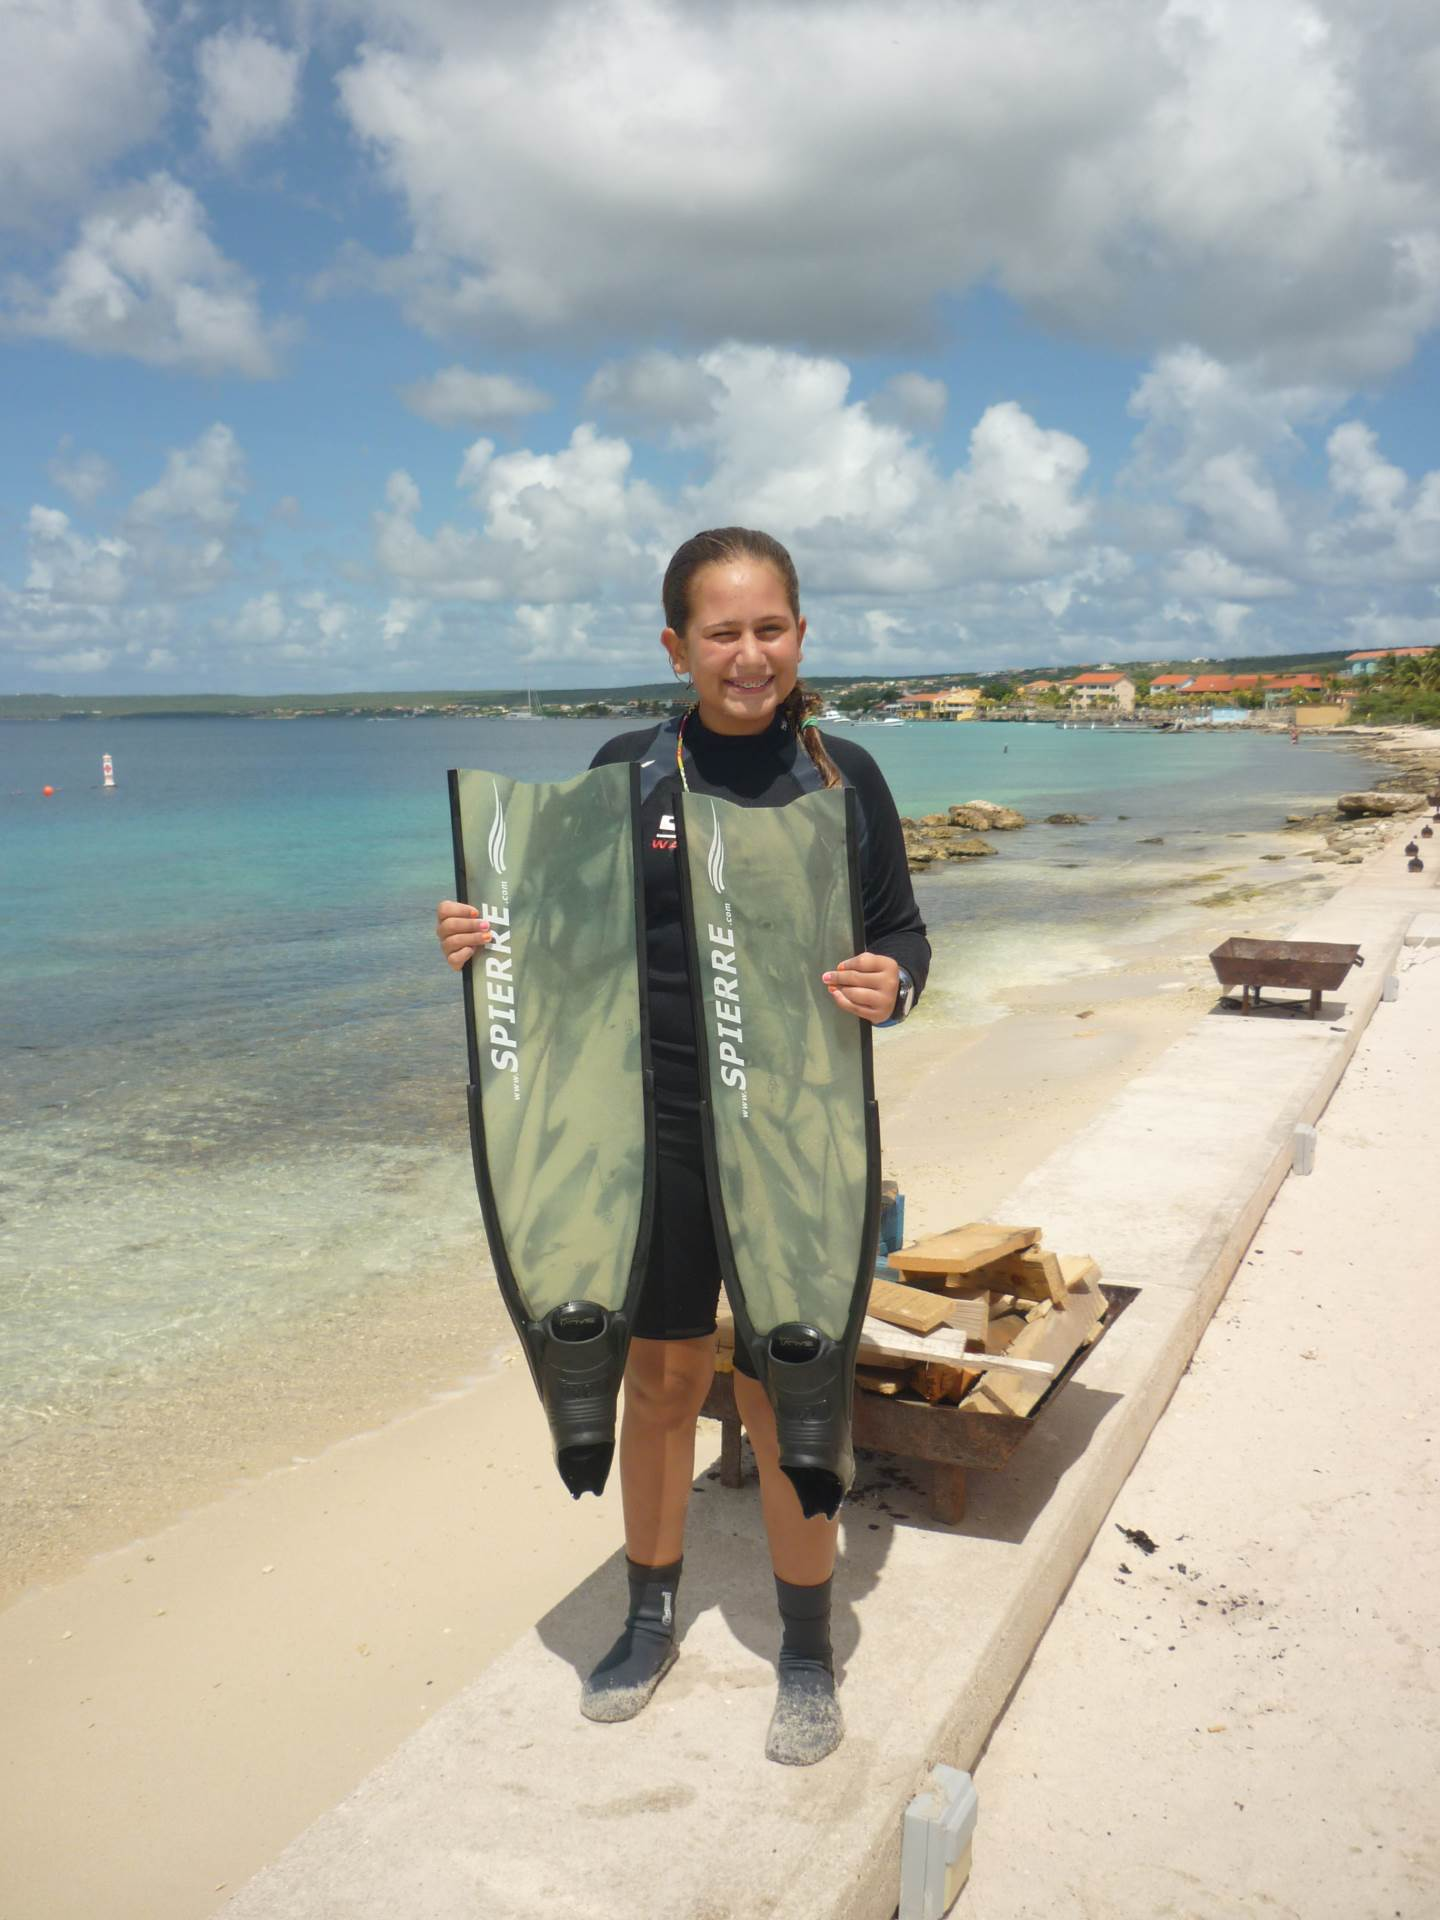 This is a picture of me a few years ago after diving 26 meters in Bon Aire.